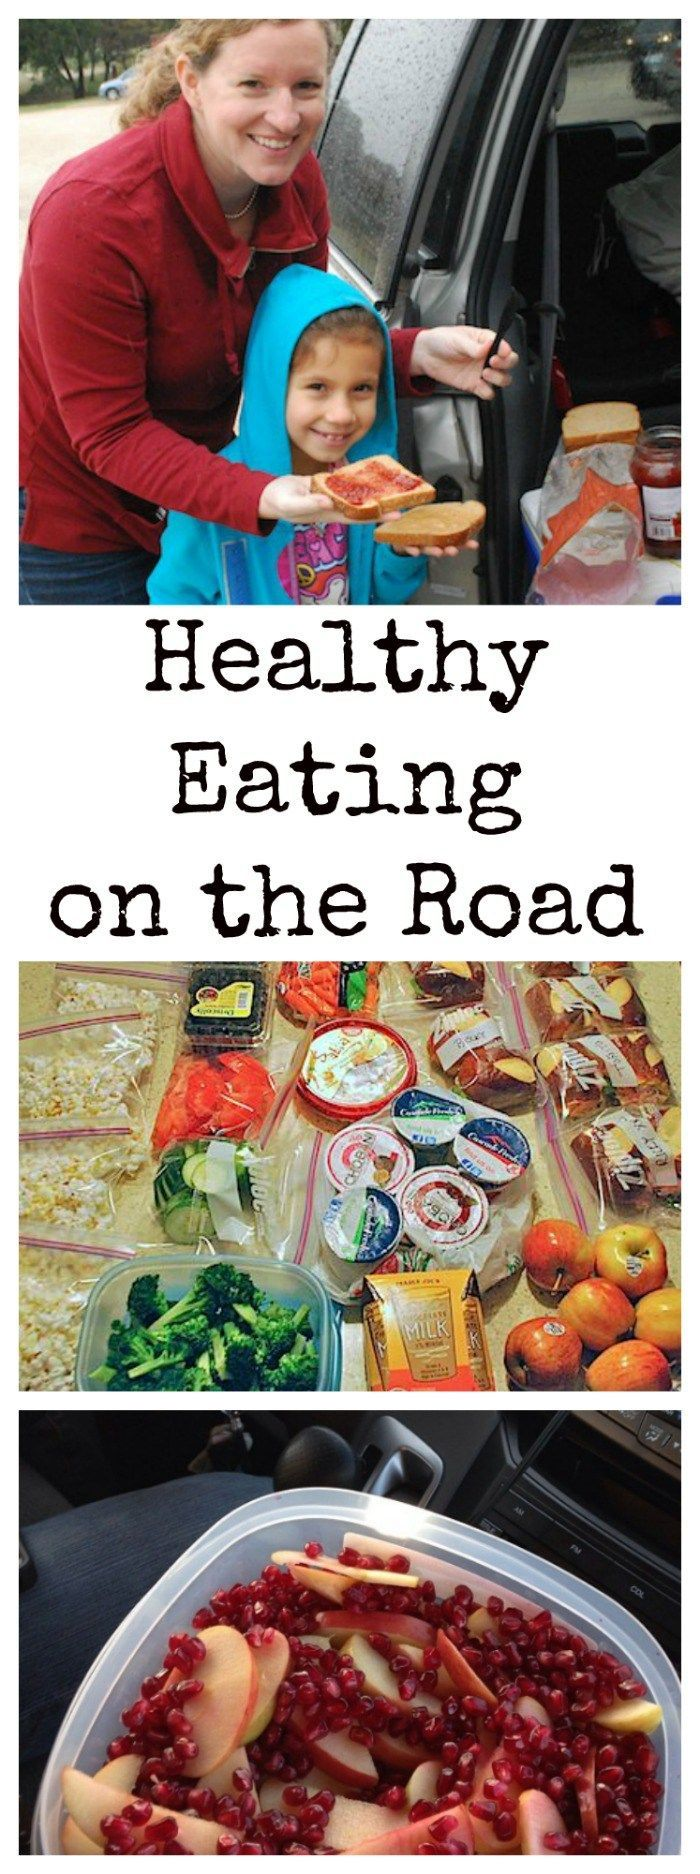 Healthy Food for Road Trips: you do not have to survive off gas station snacks! Here are some healthy and easy snacks that same time and money on road trips.